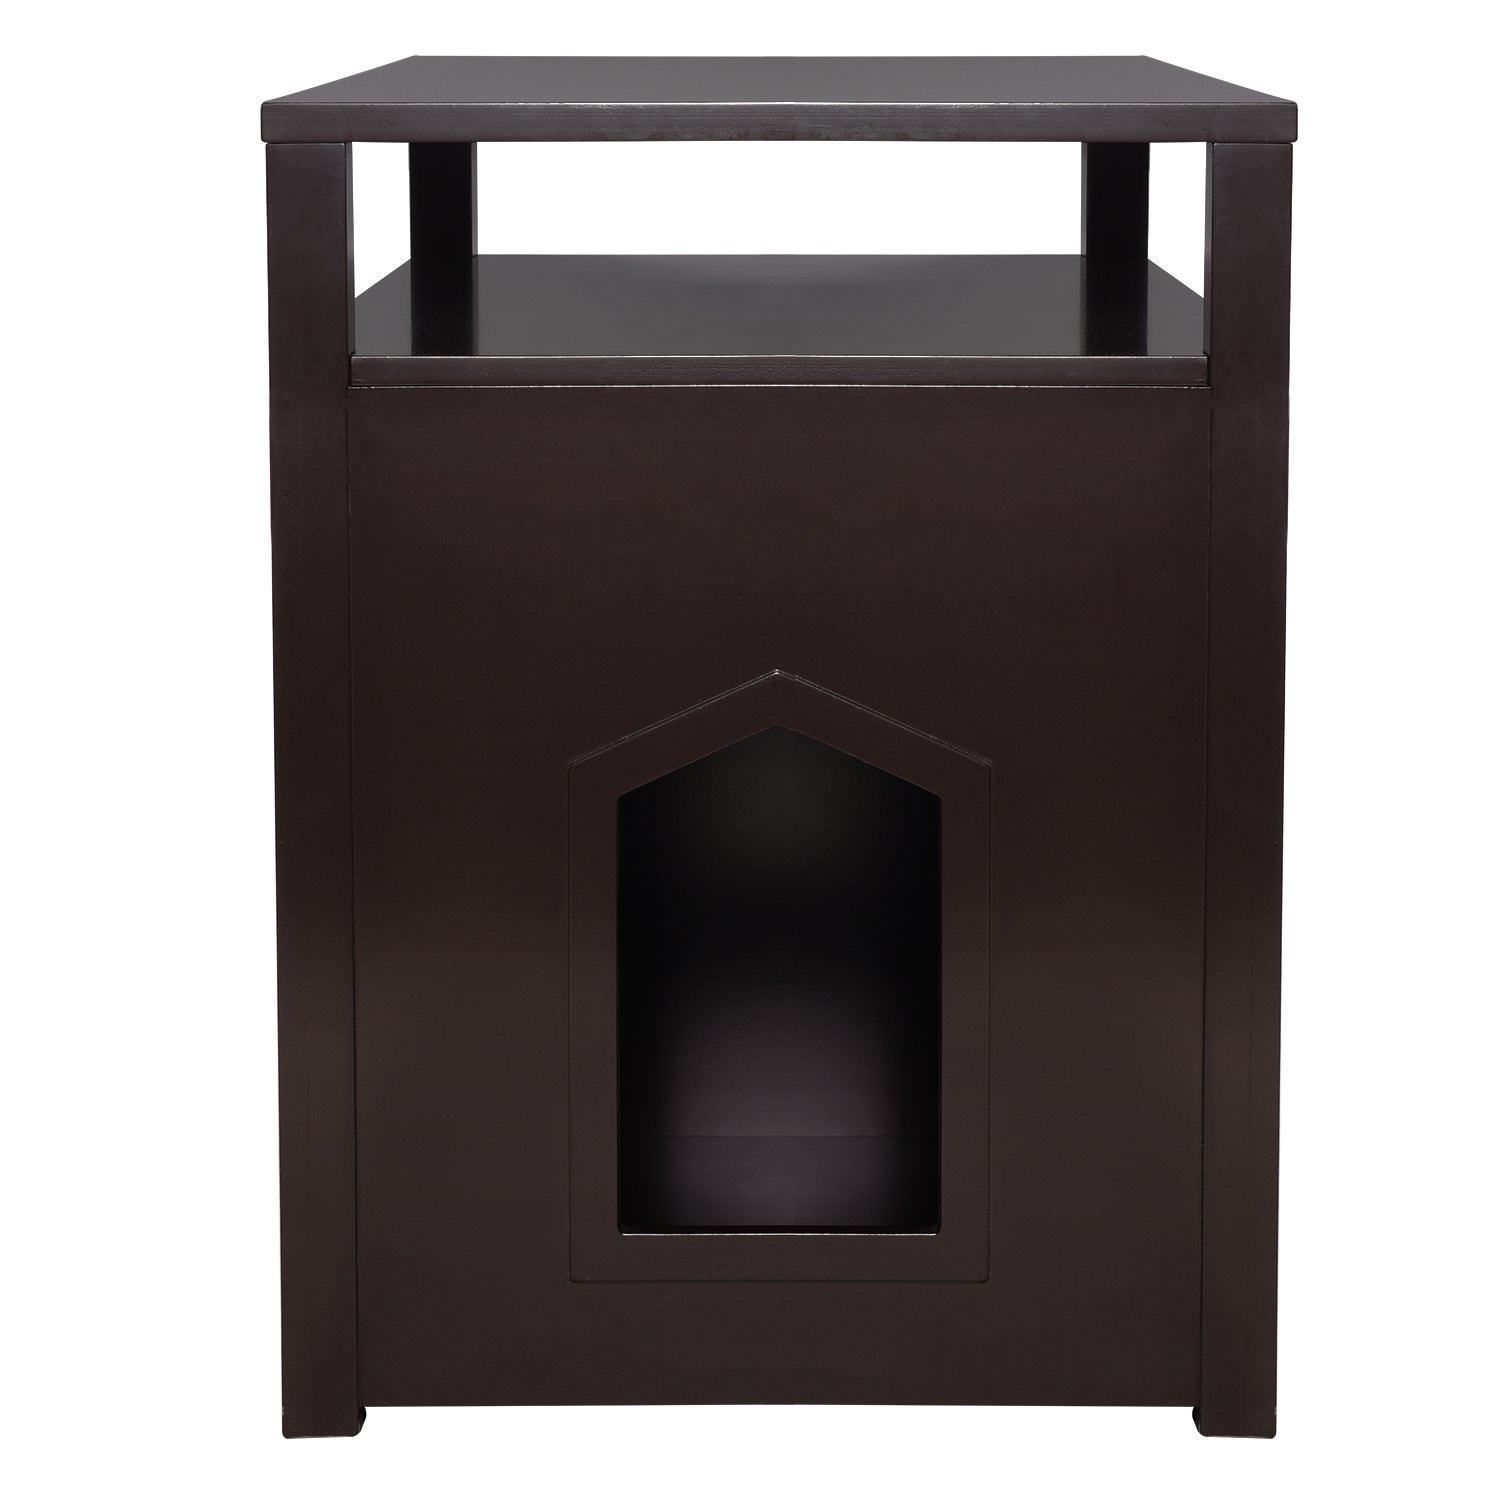 Shop Arf Pets Cat Litter Box Enclosure, Furniture Large Box House With  Table   Free Shipping Today   Overstock.com   20478401